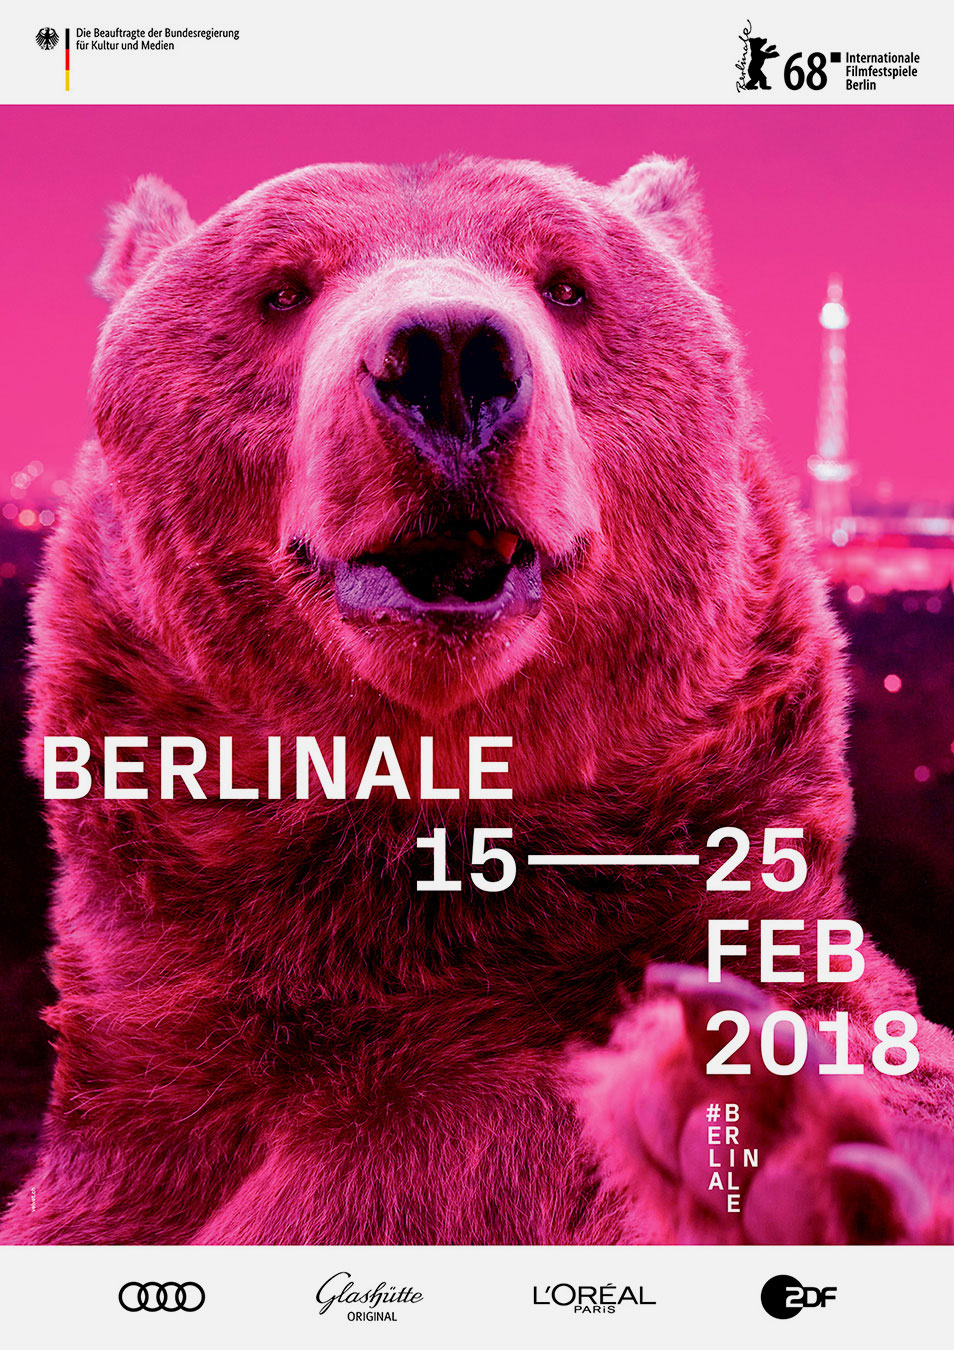 Berlinale Plakat 2018 Keyvisual Design